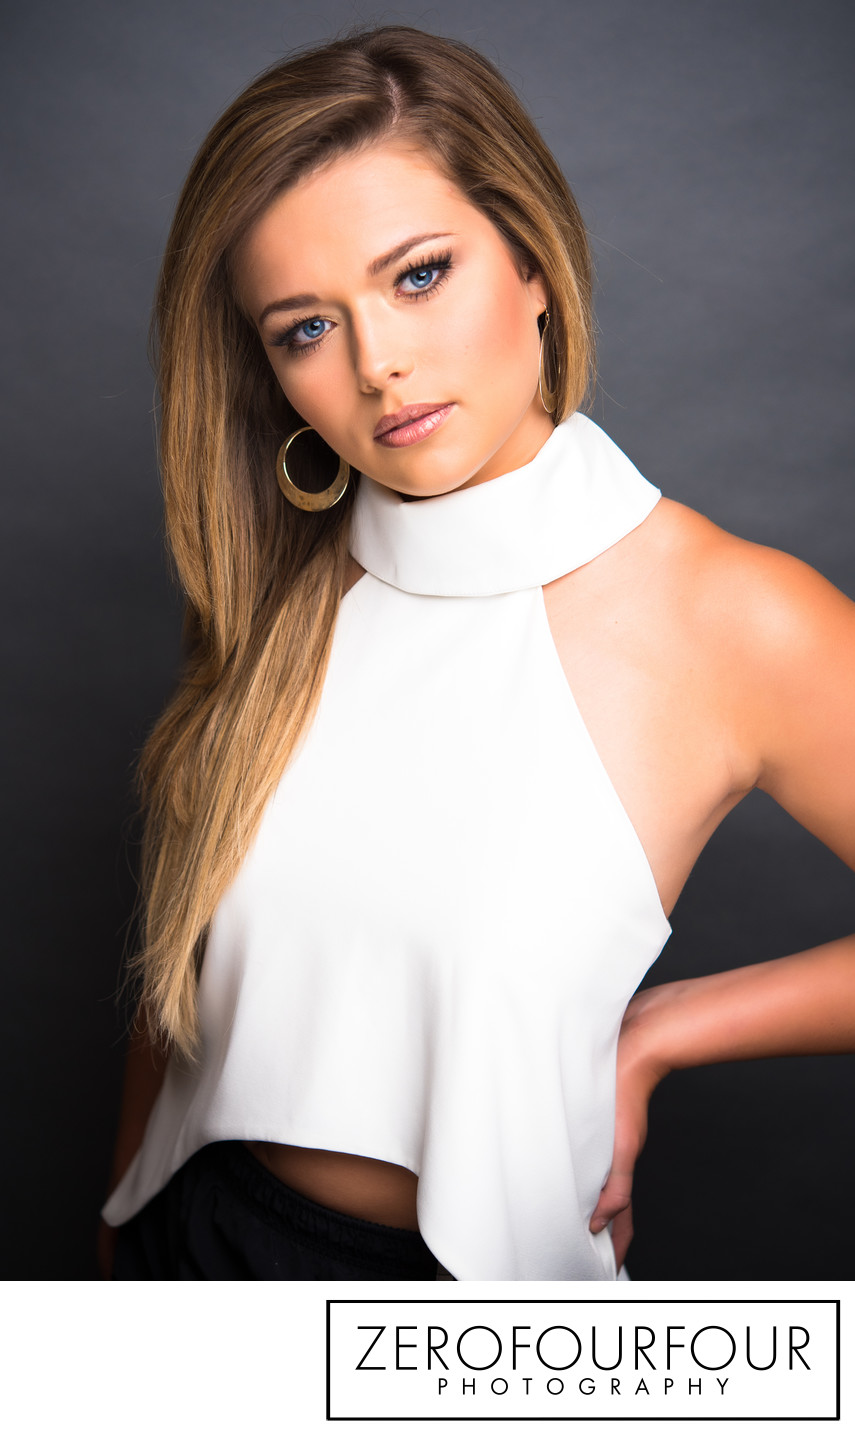 Stunning pageant contestant headshot for competition